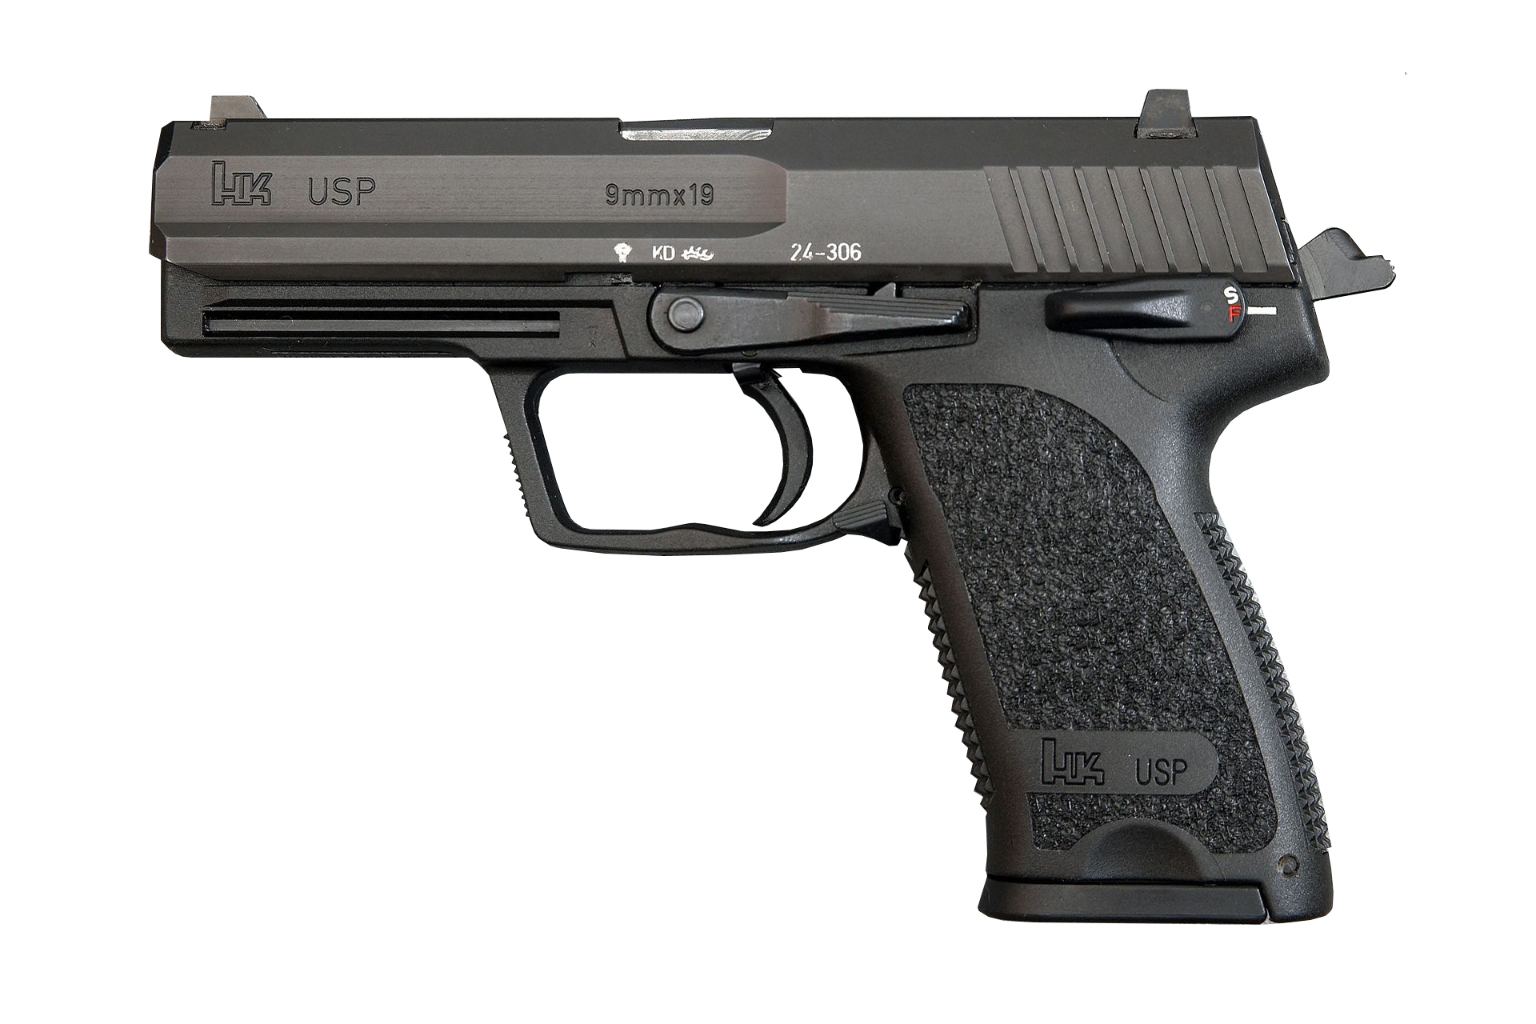 The HK Universal Service Pistol: Just How Good Is This Gun?